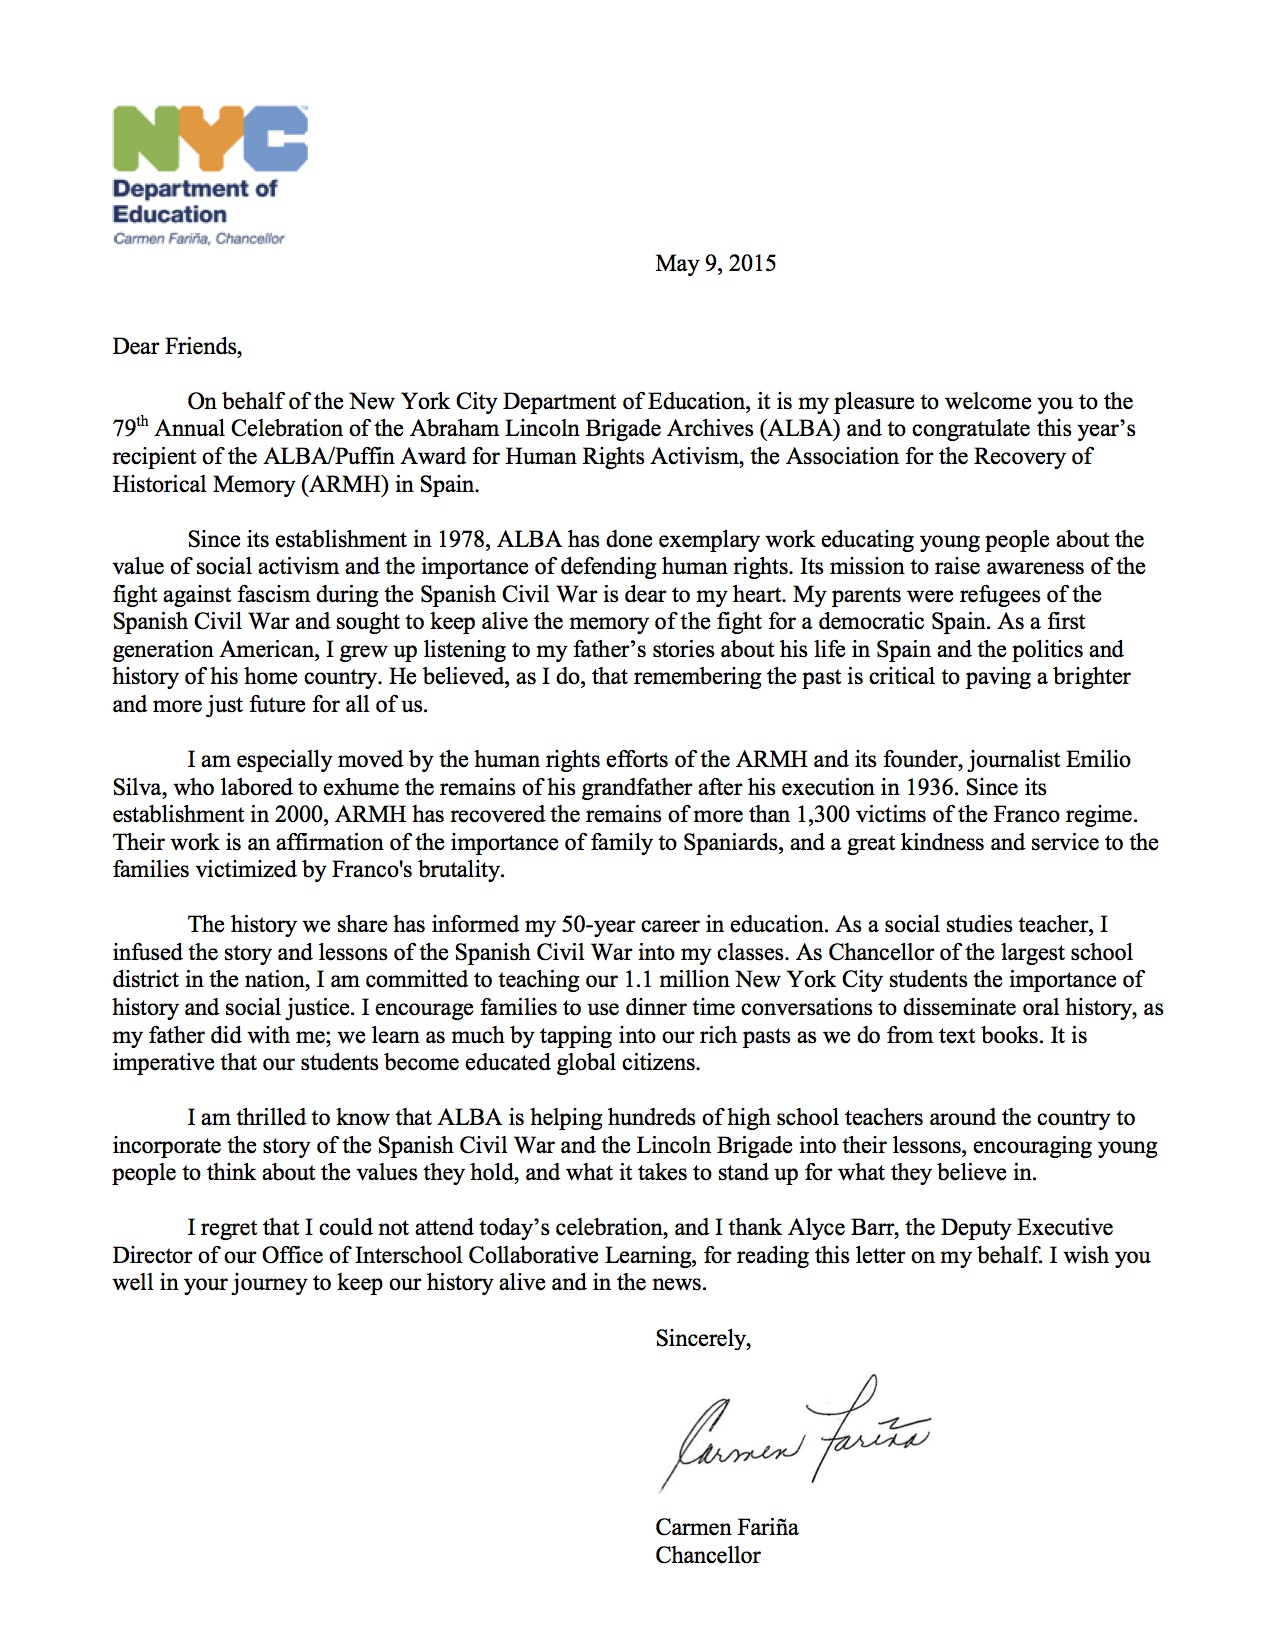 A Letter From The NYC Chancellor Of Education